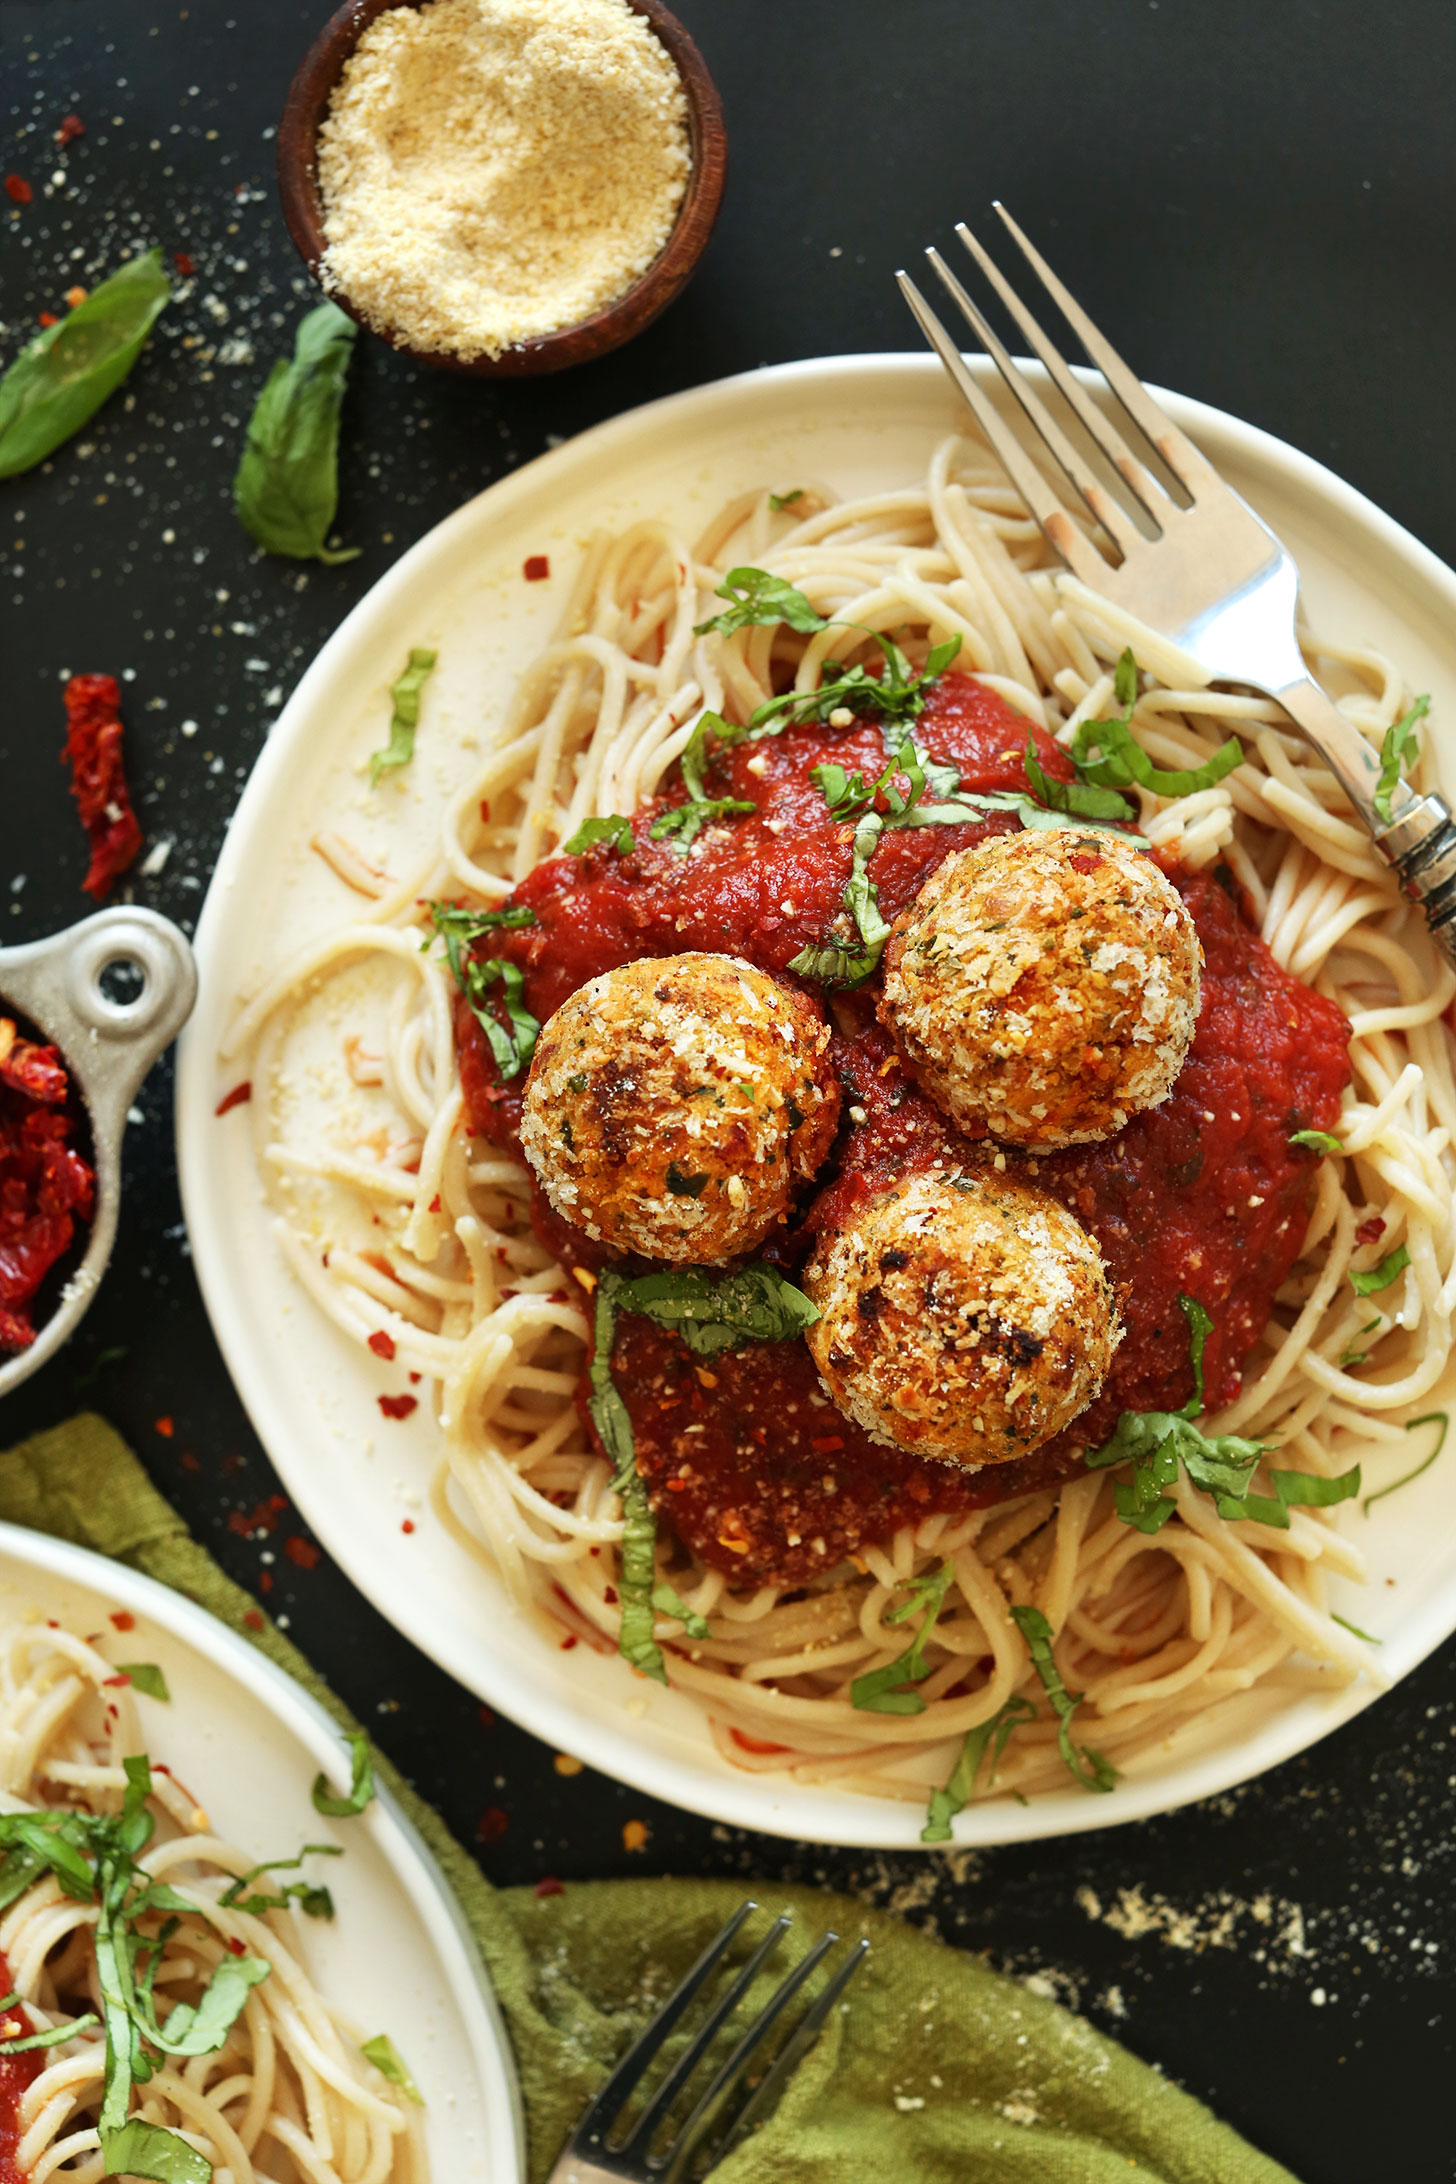 Dinner plate of healthy Chickpea Meatballs atop spaghetti for a plant-based meal